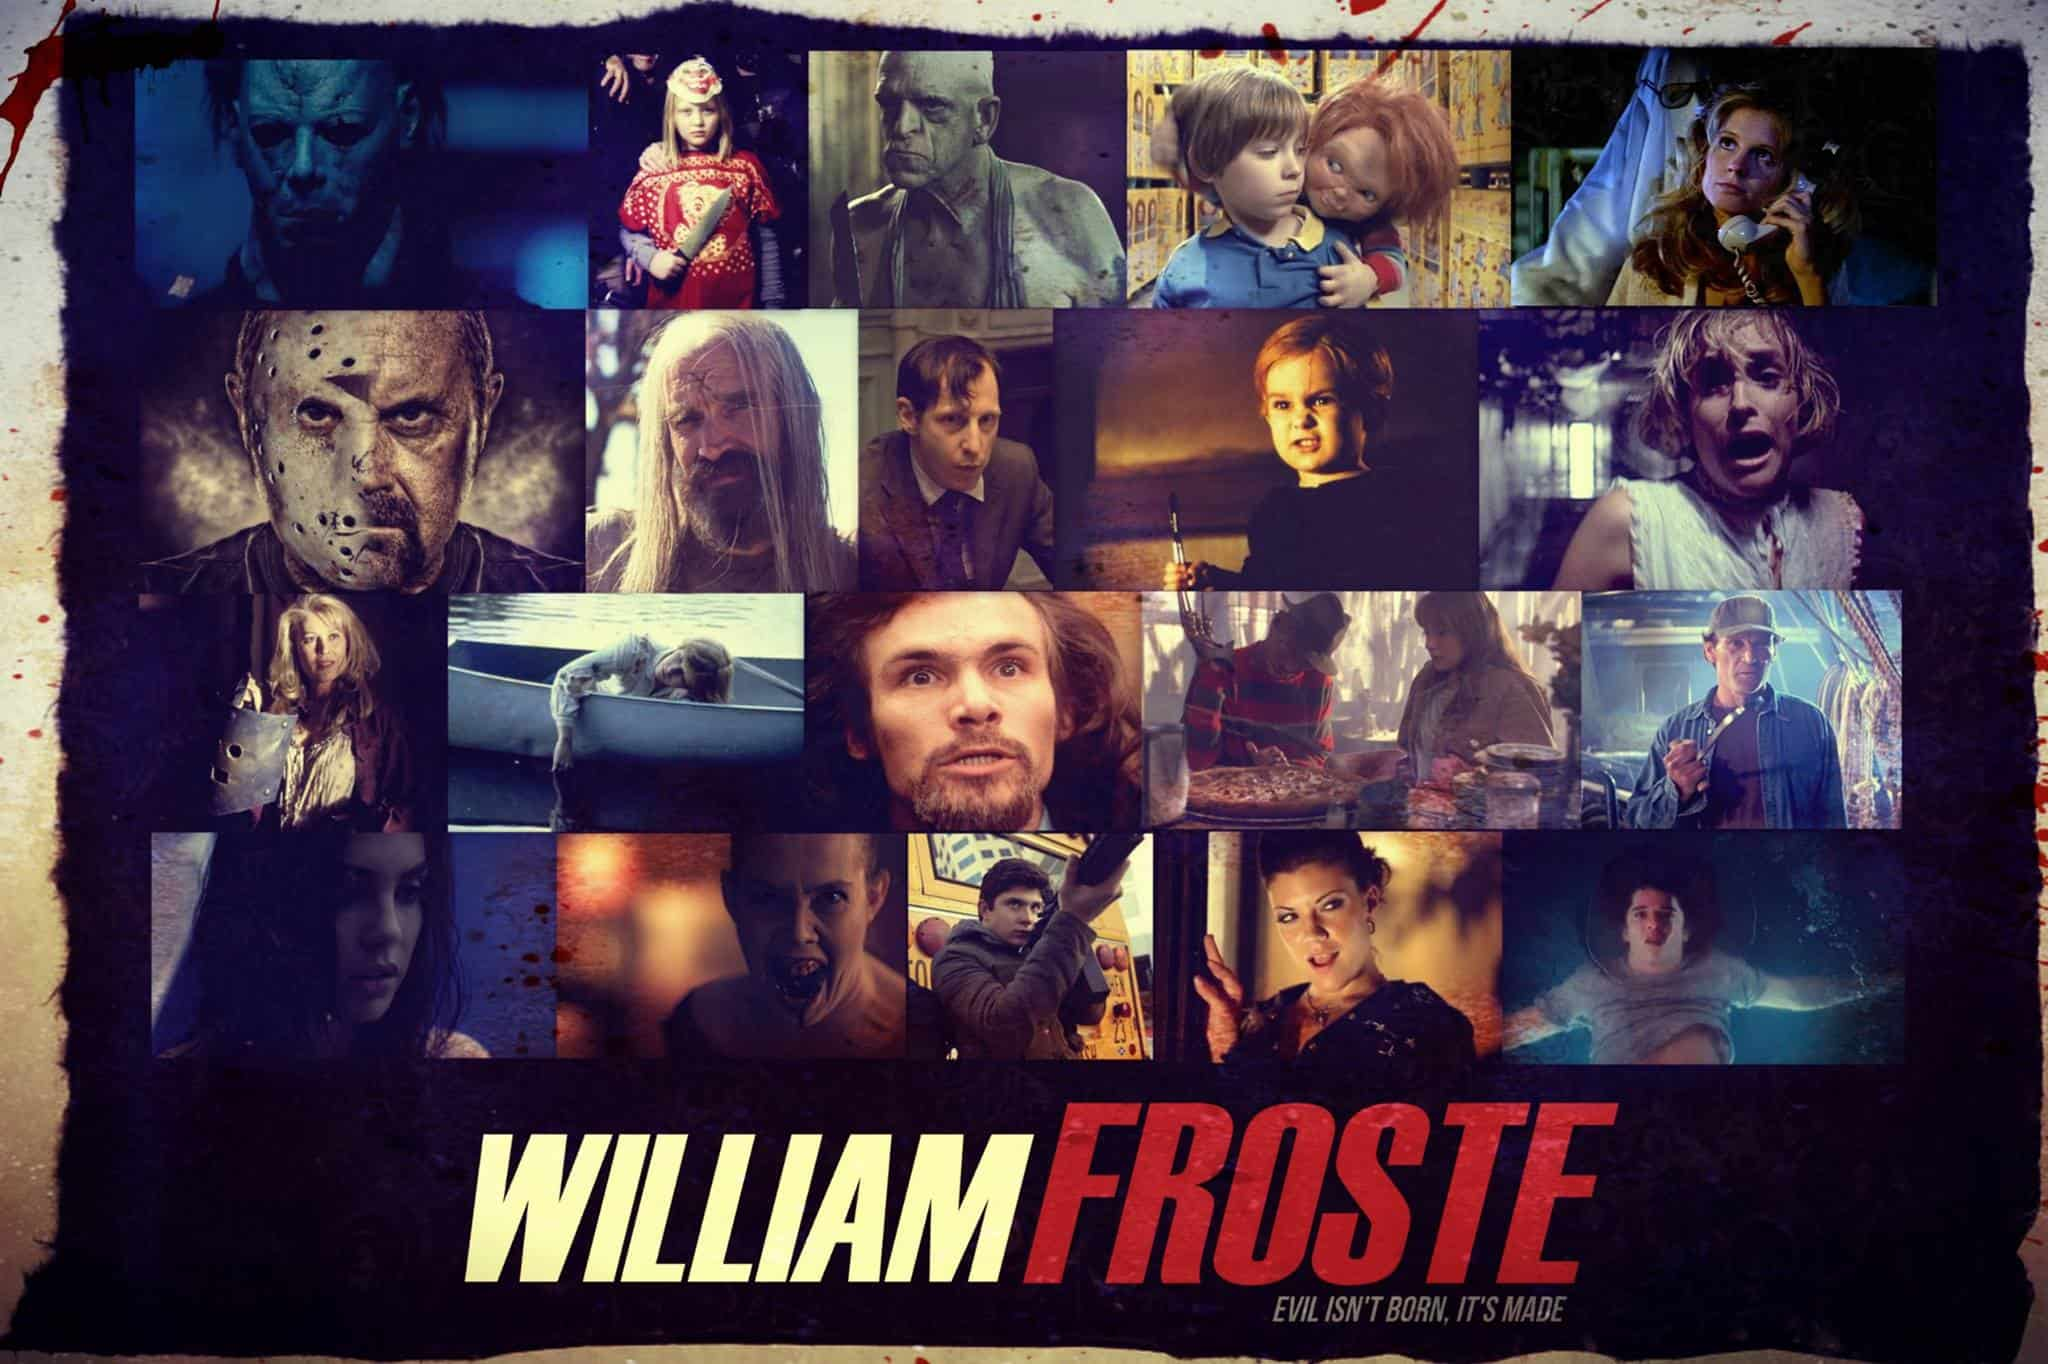 williamfrosteposter - Jordan Ladd and Garrett Ryan Added to Growing William Froste Cast